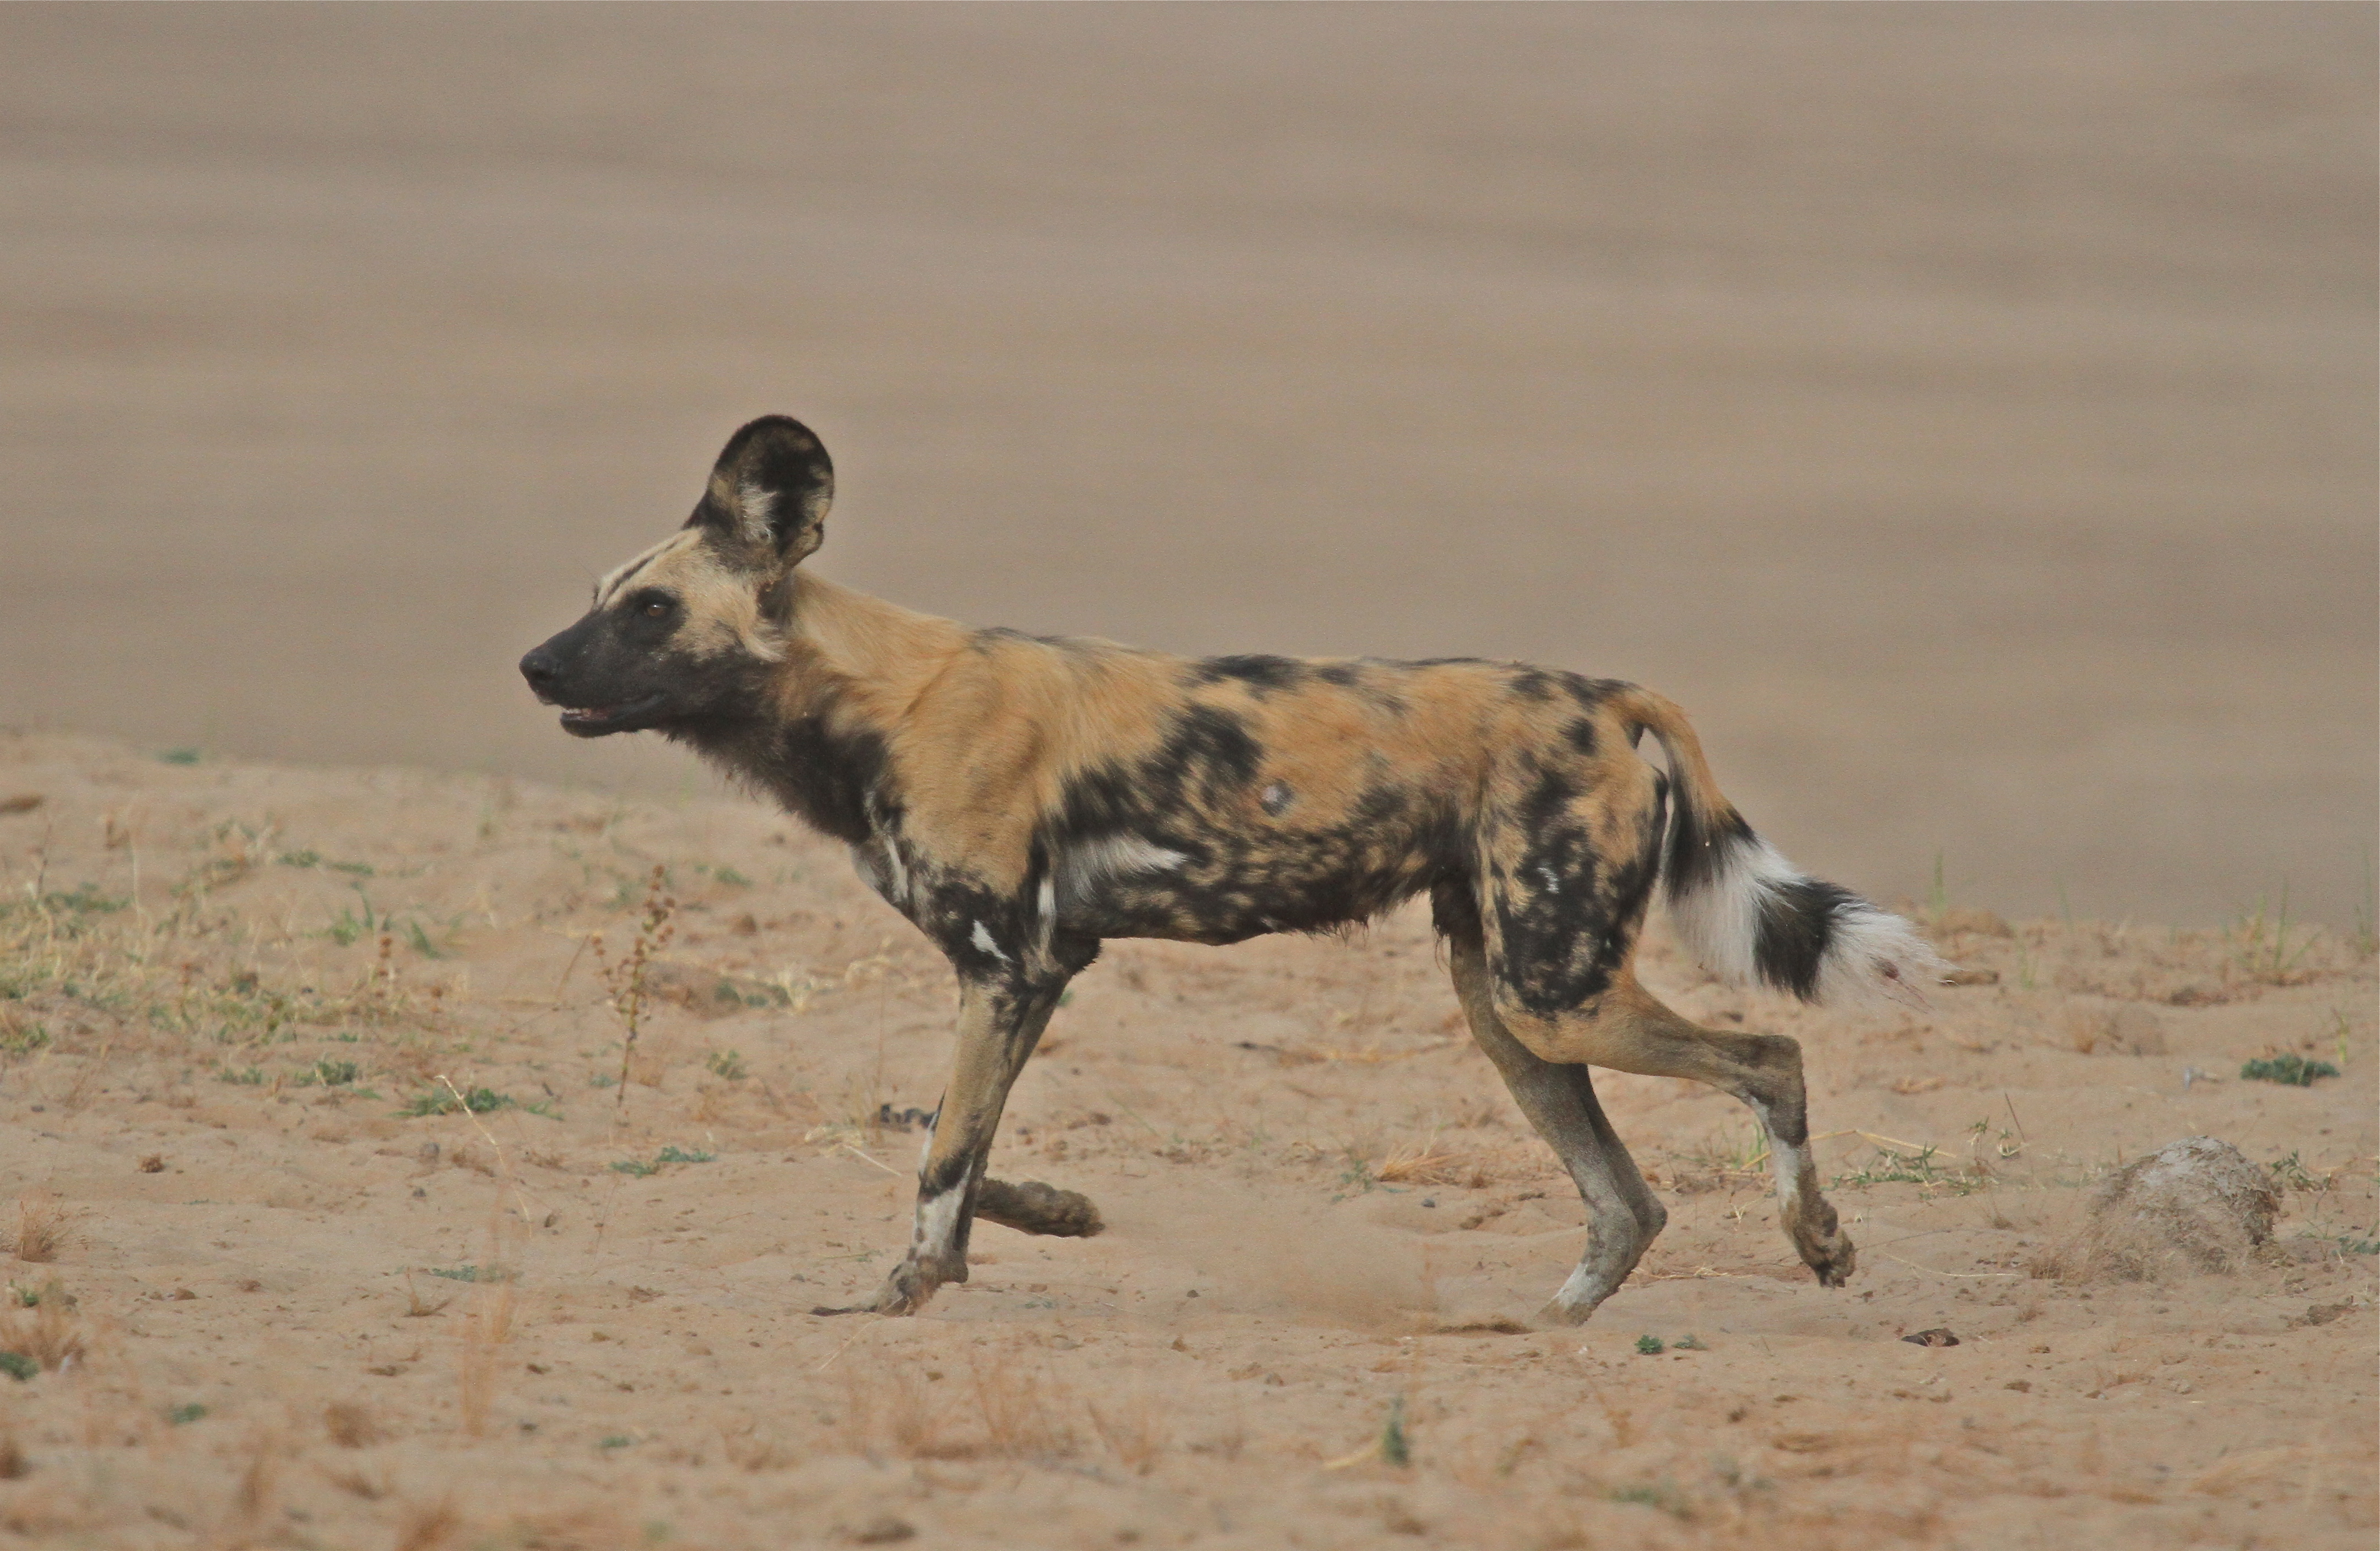 Another Wild Dog